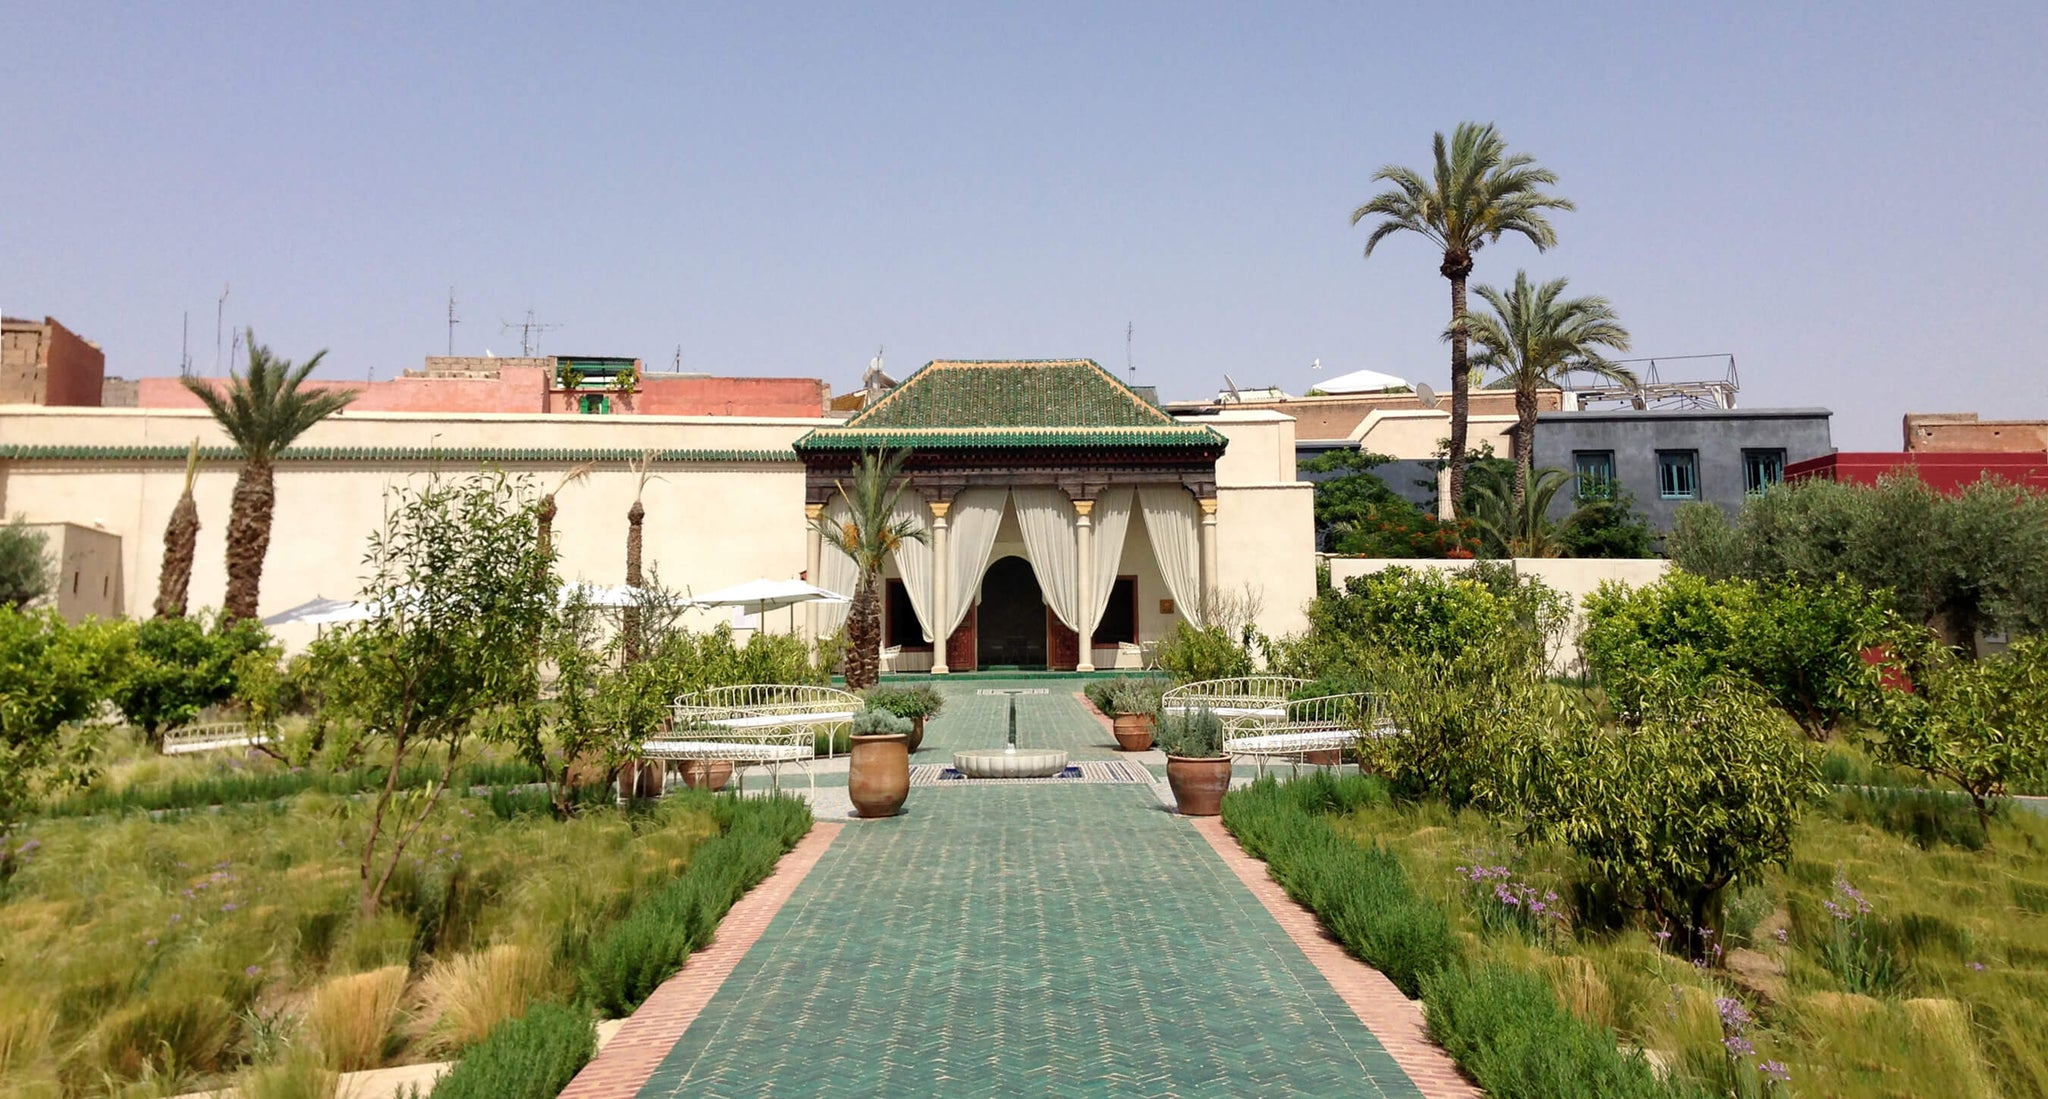 Le Jardin Secret Marrakech Morocco